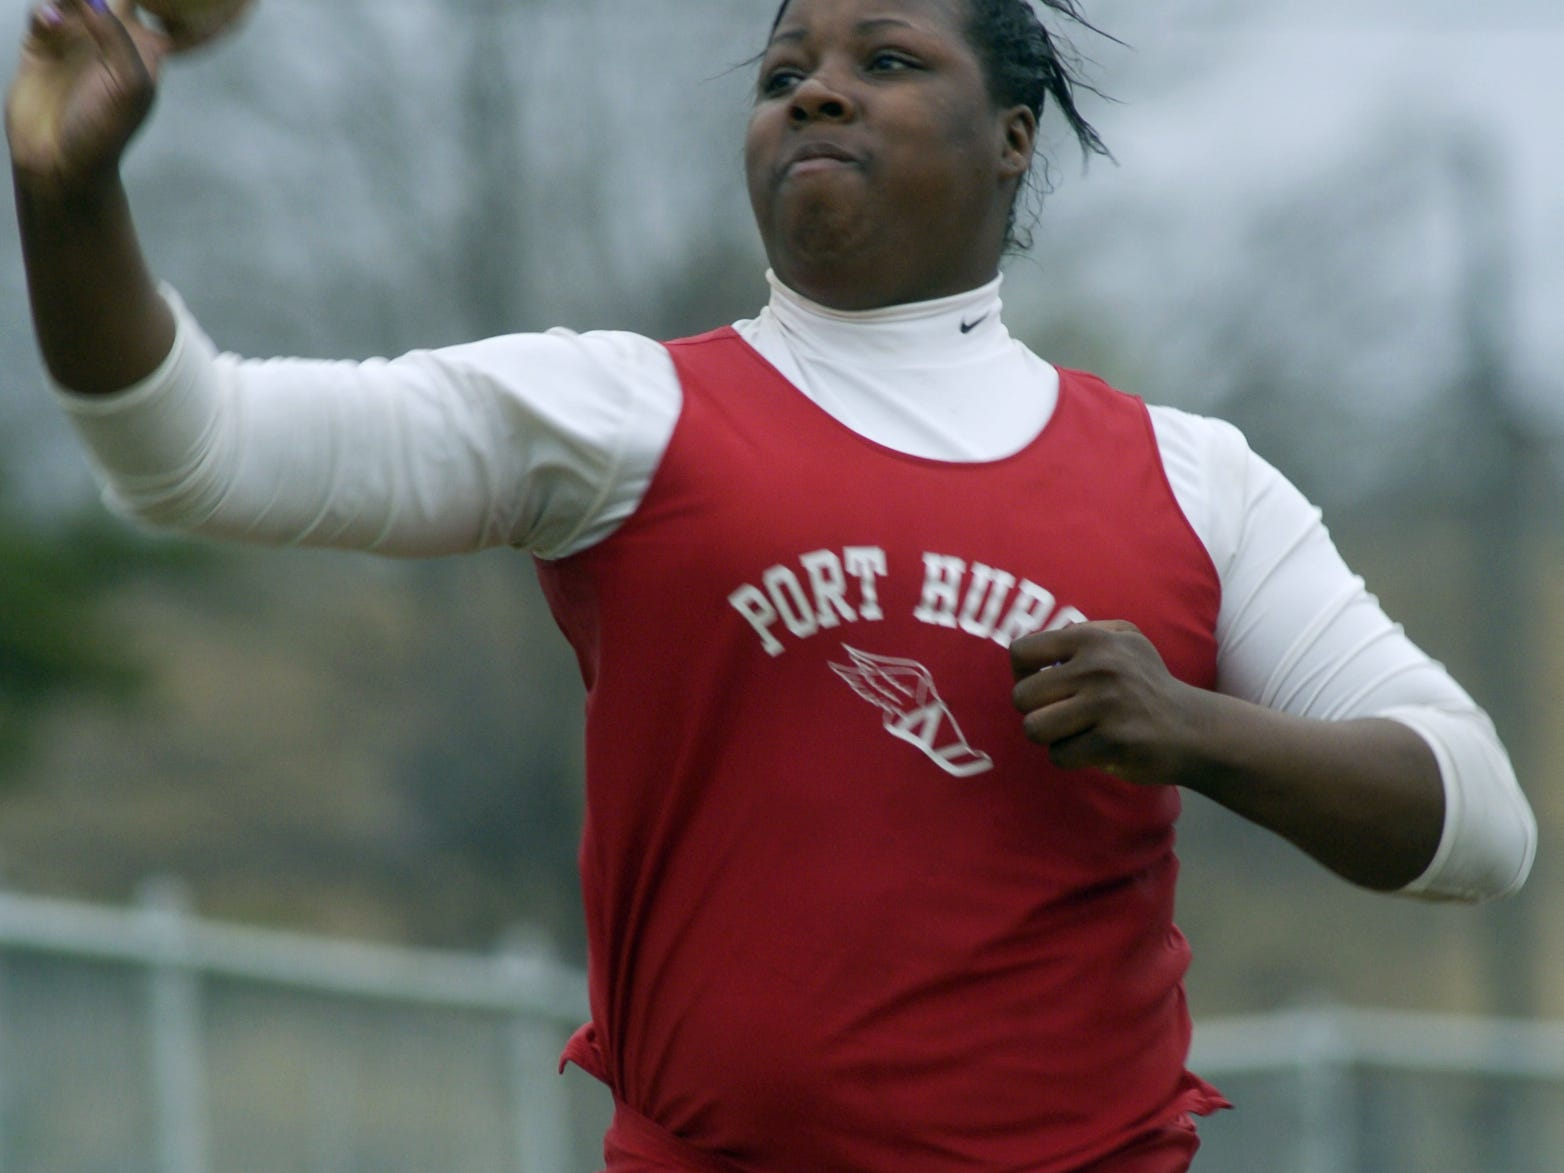 Port Huron's Norianna Brown is the Blue Water Meet of Champions record holder in the shot put and discus.